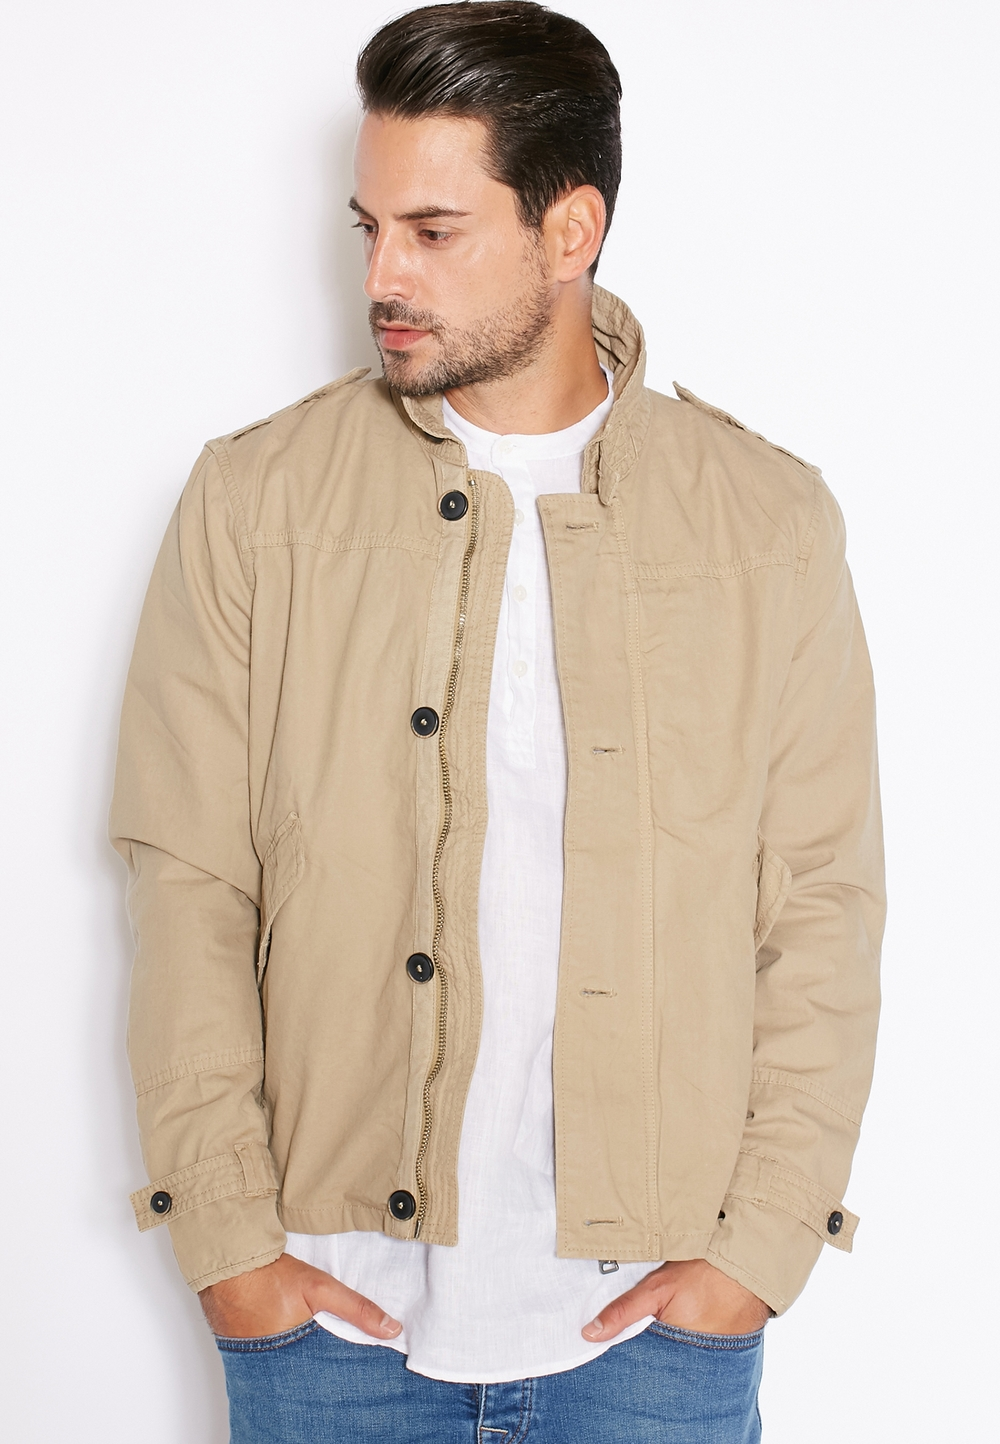 MANGO MAN// Fitted Jacket// 359 AED